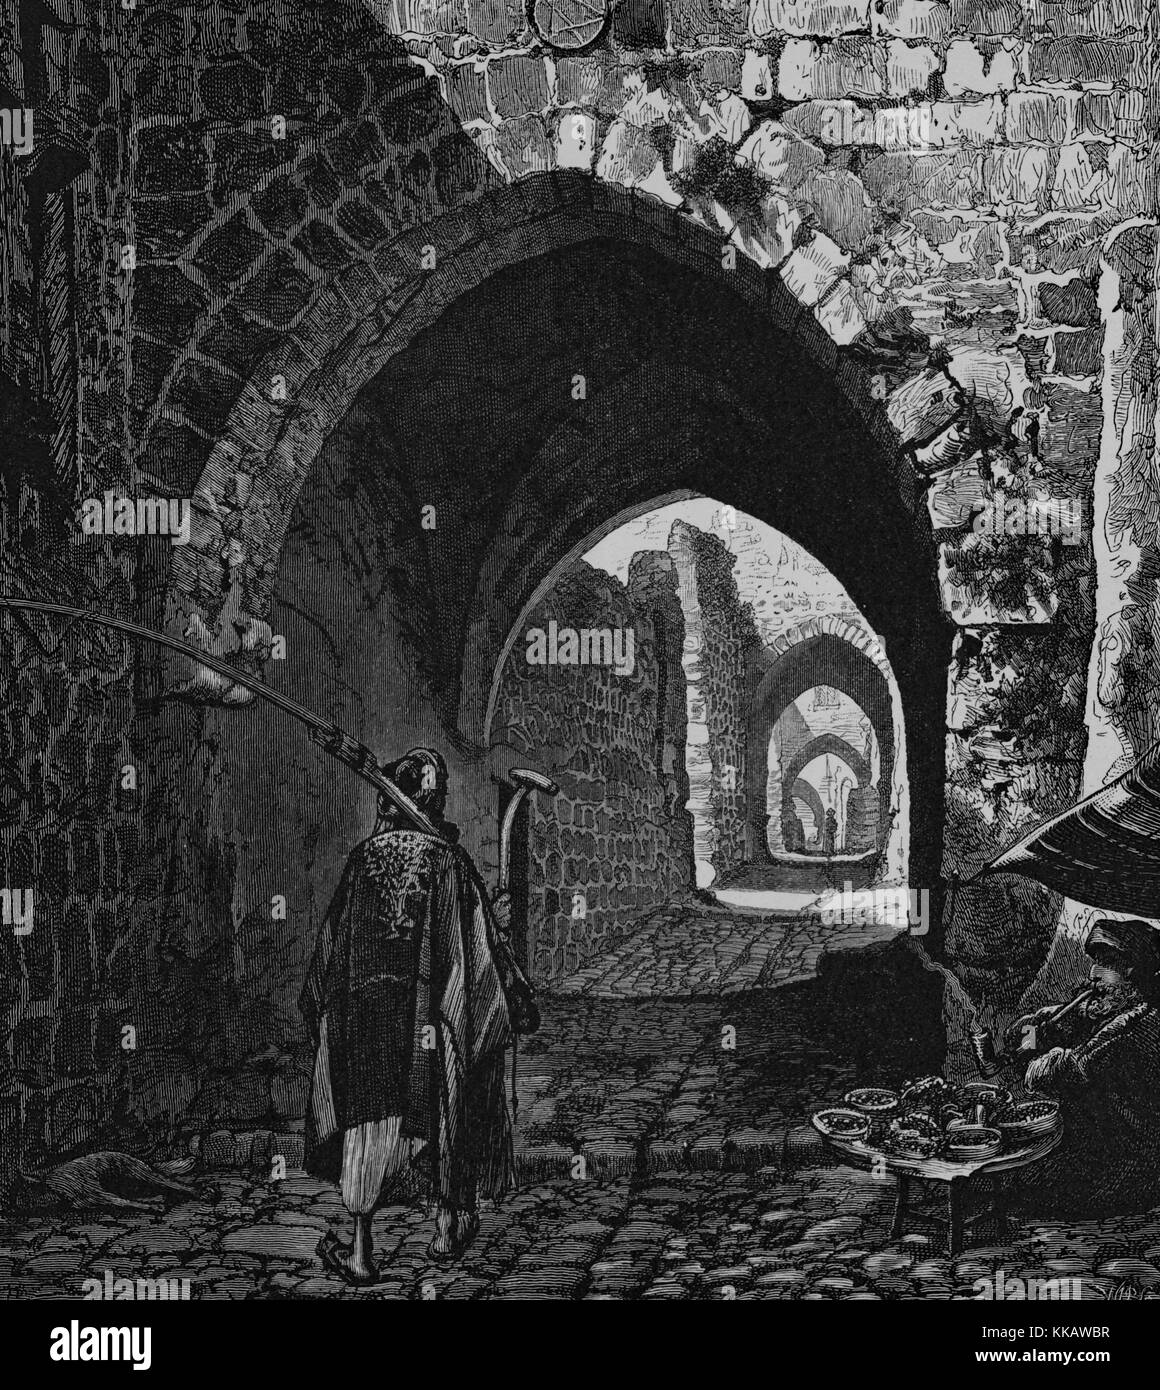 An engraving depicting a peasant walking up the street near the House of Saint Veronica in the Via Dolorosa, according - Stock Image